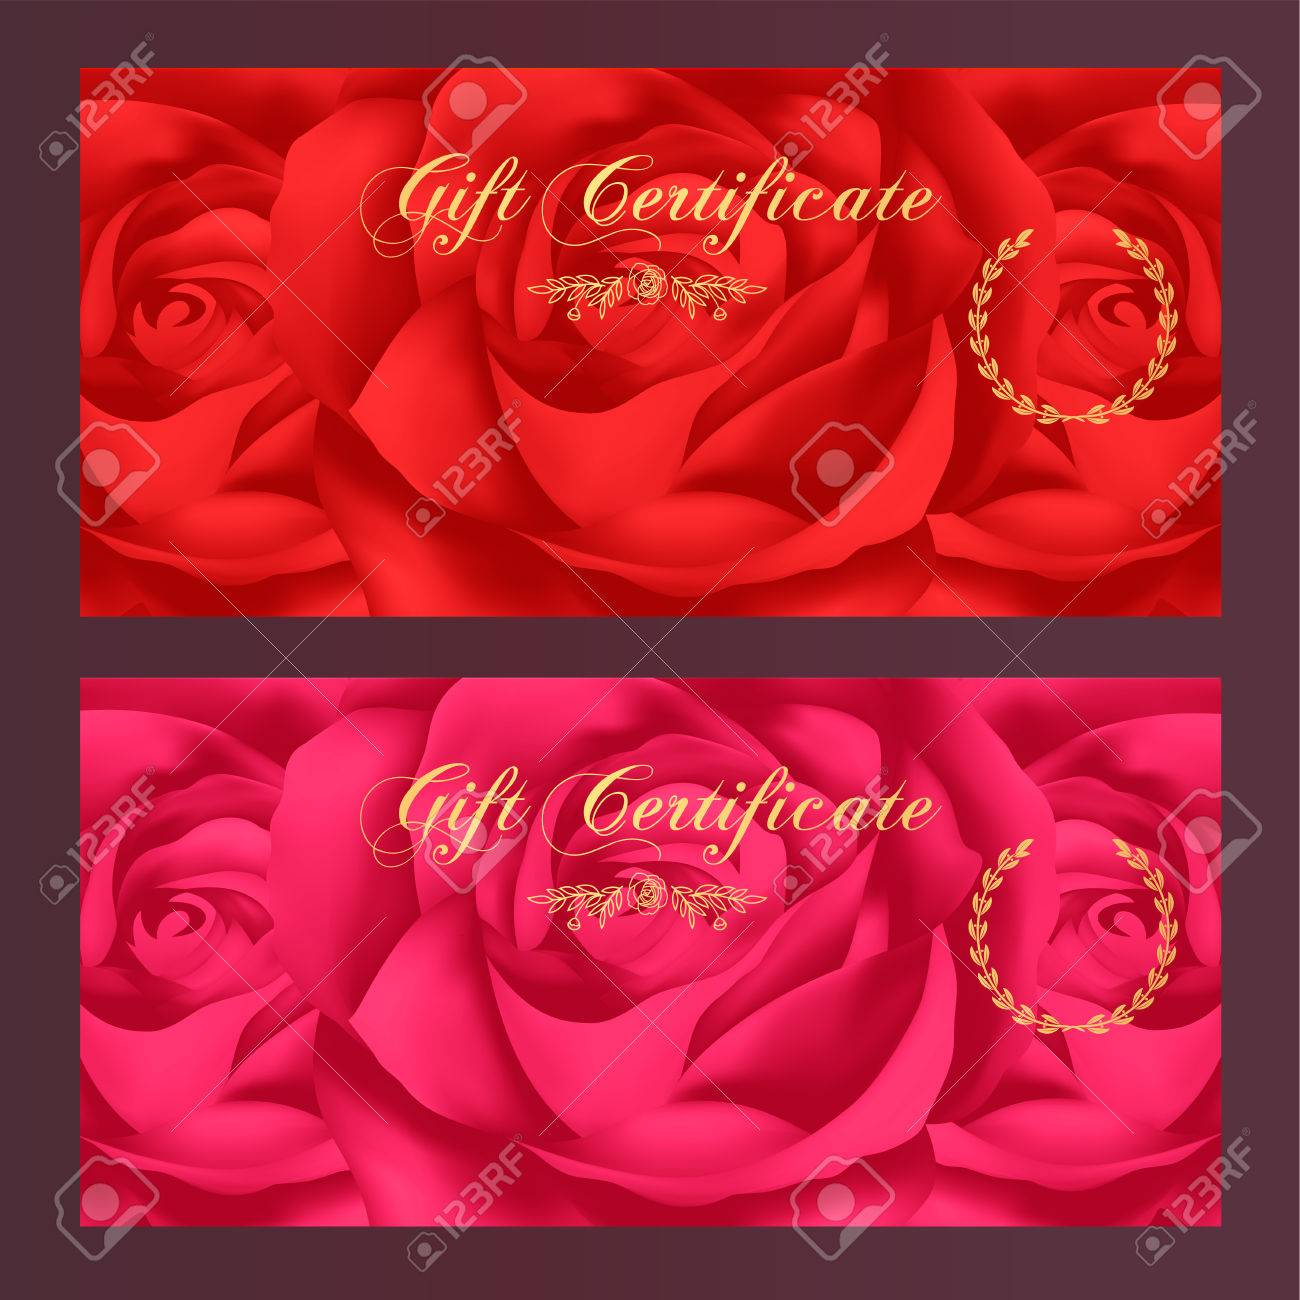 Gift certificate voucher coupon reward gift card template gift certificate voucher coupon reward gift card template with red rose flowers pattern yadclub Images